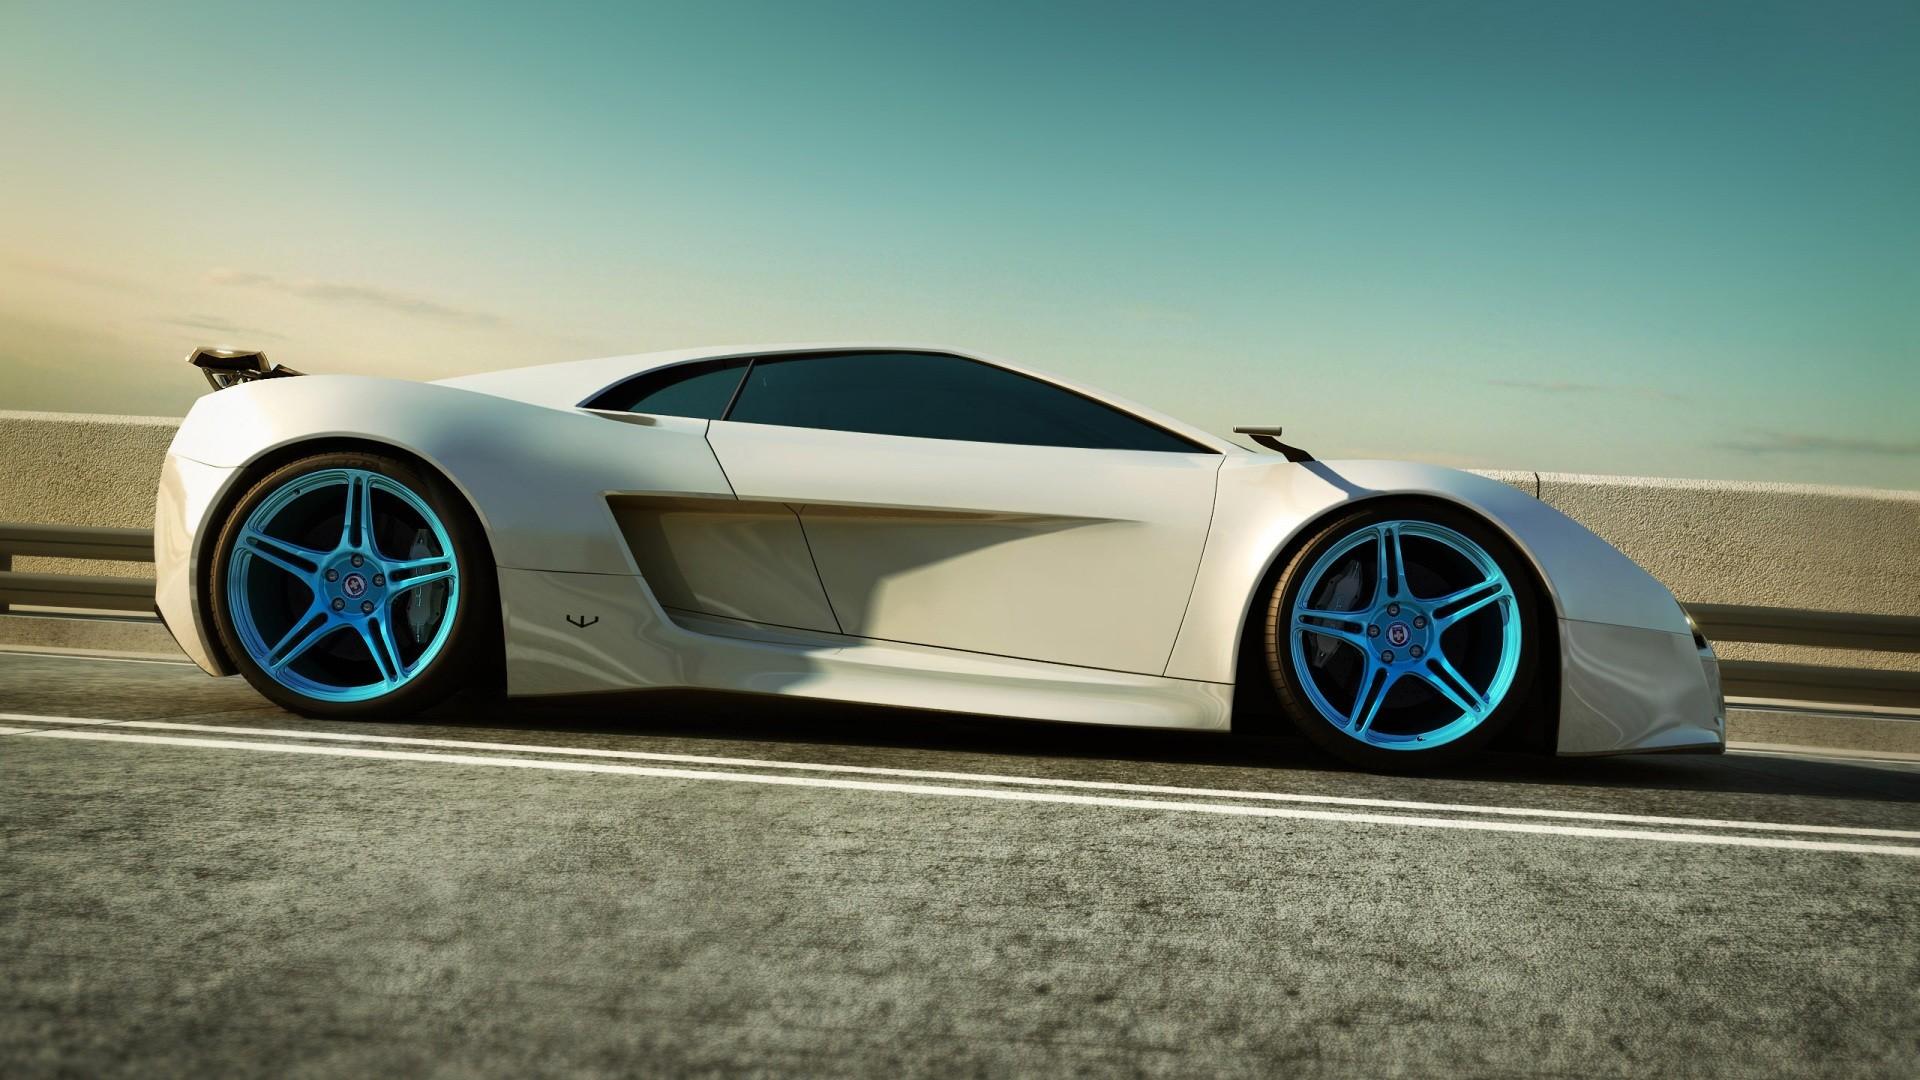 1920x1080 ... White Car HD wallpaper  #18087